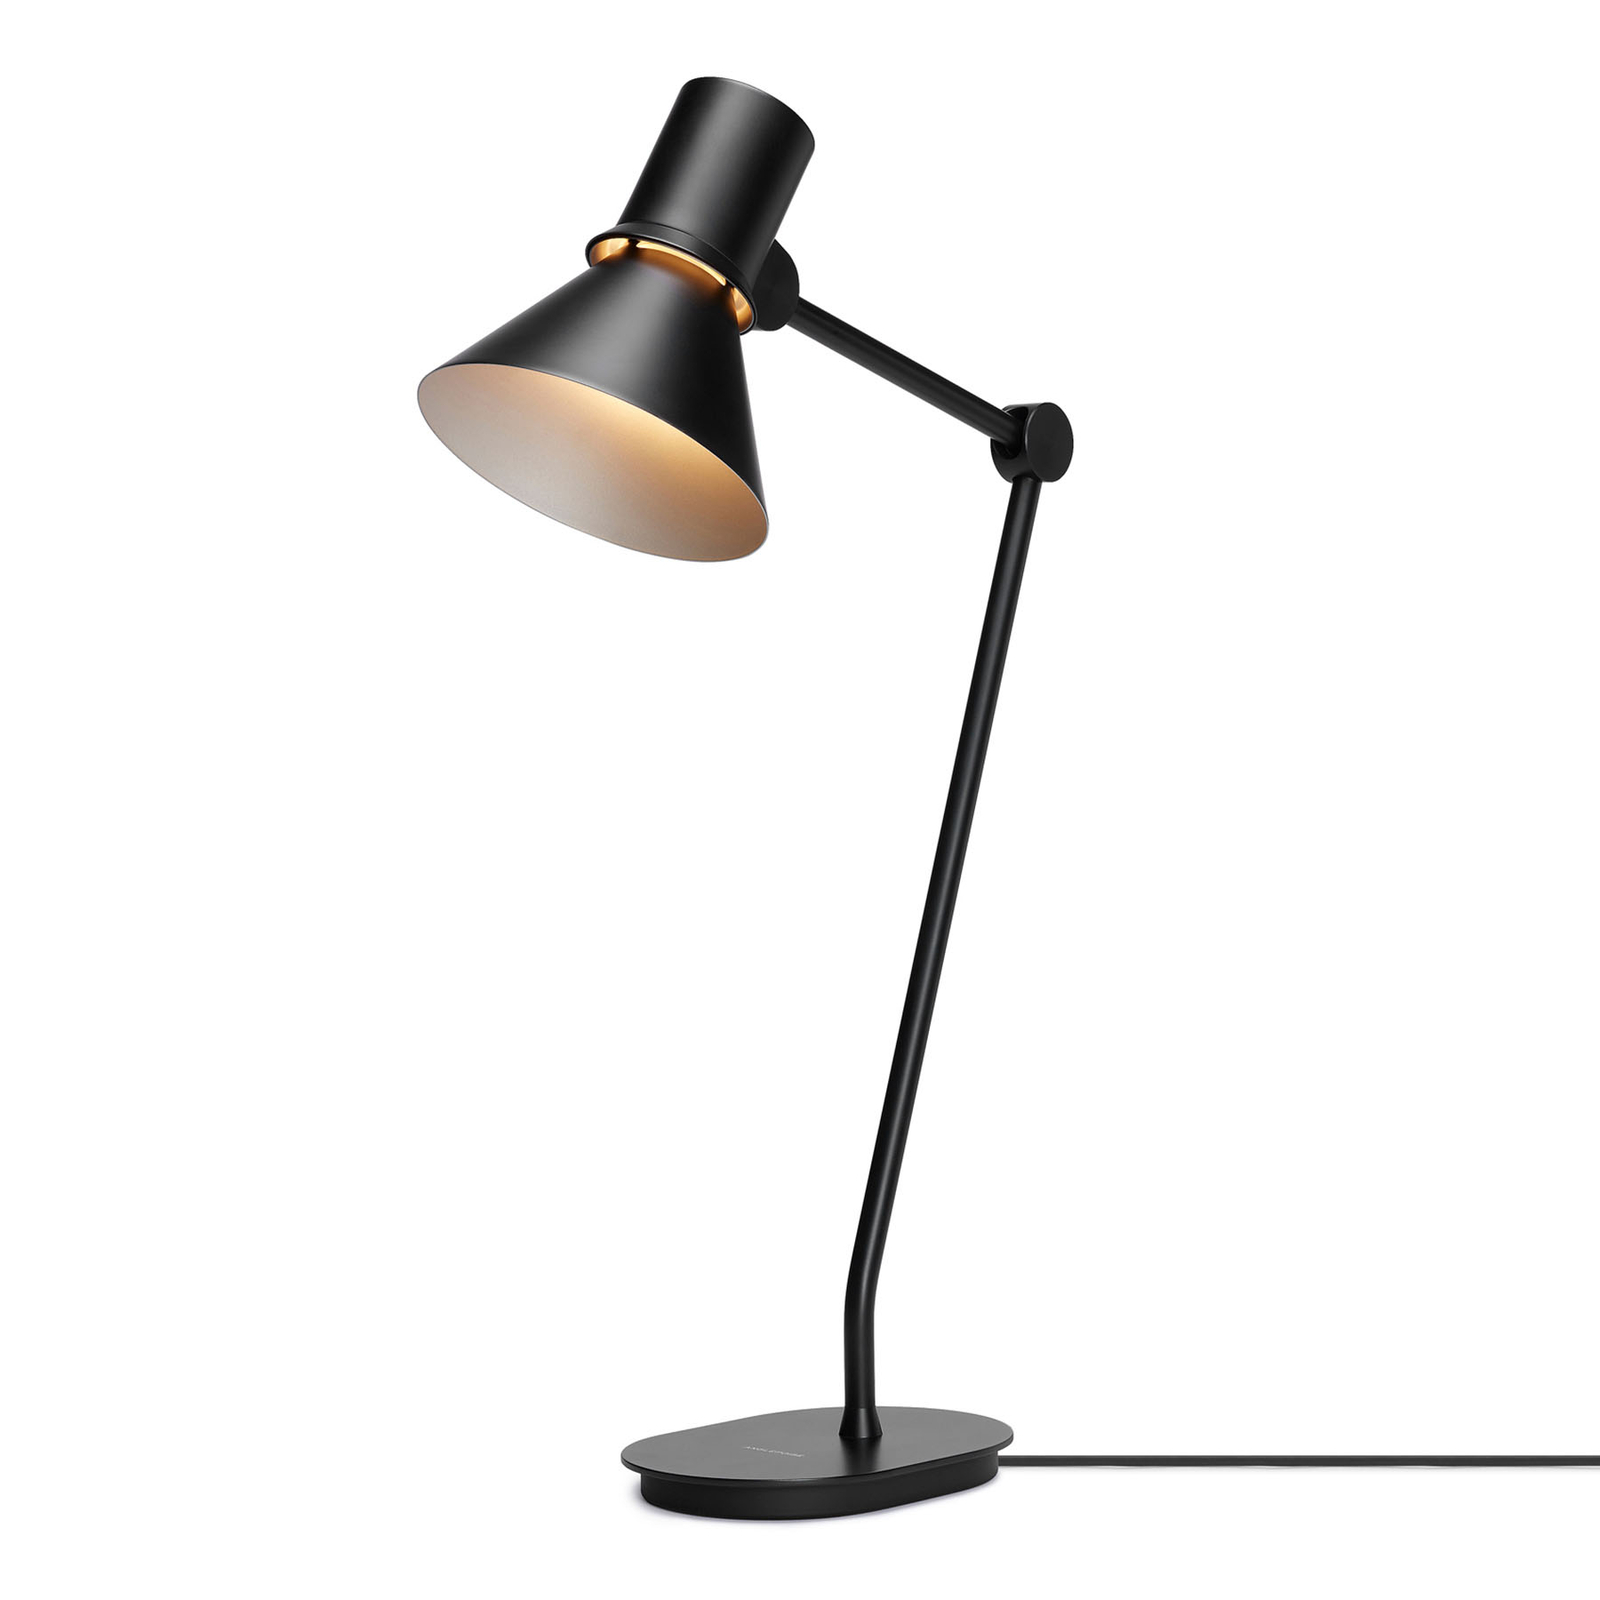 Anglepoise Type 80 lampe à poser, noire mate